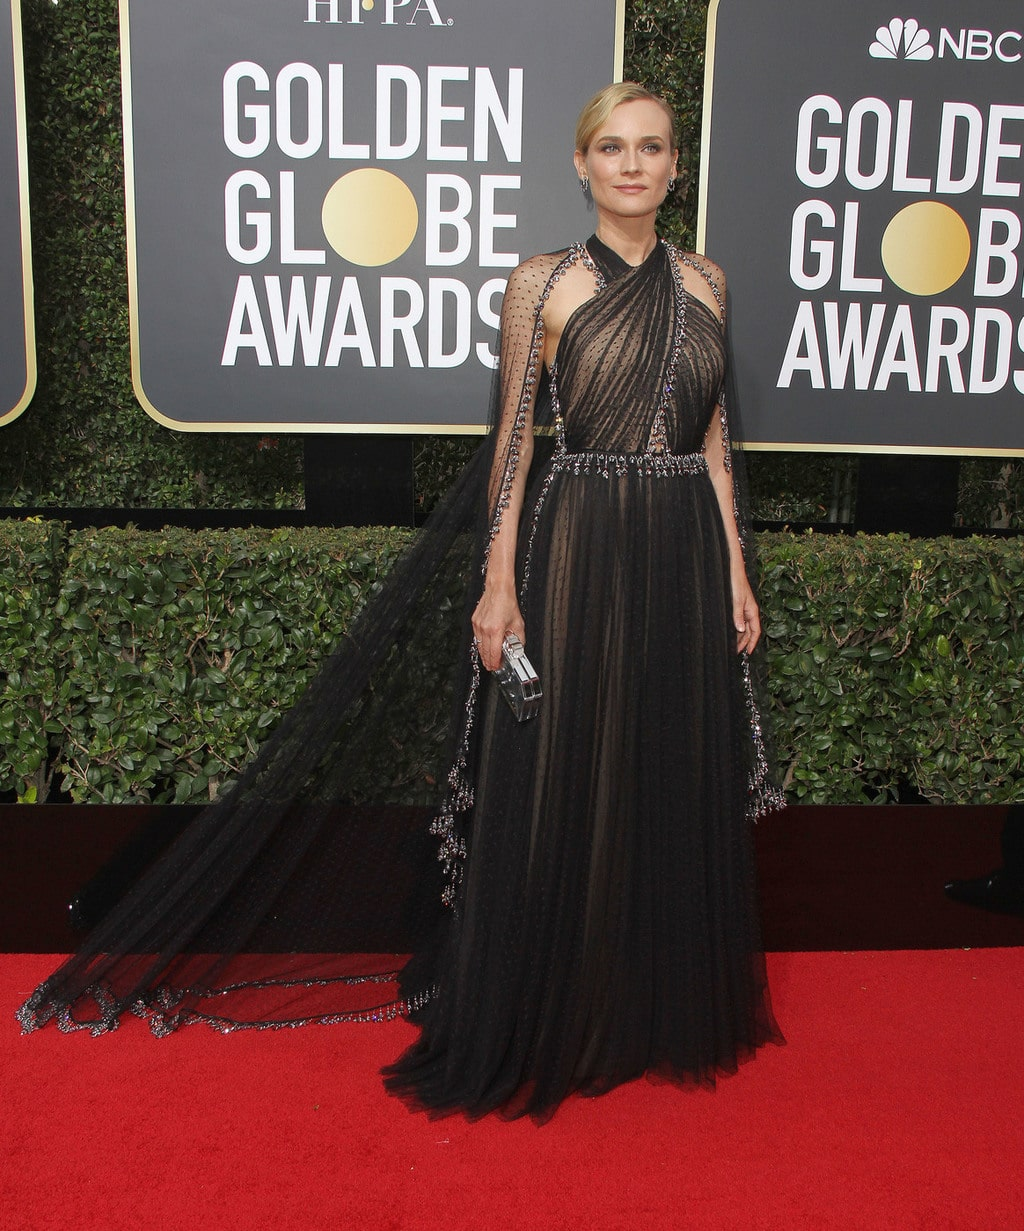 Diane Kruger in a black and silver Prada gown with crisscross neckline at the 2018 Golden Globe Awards red carpet